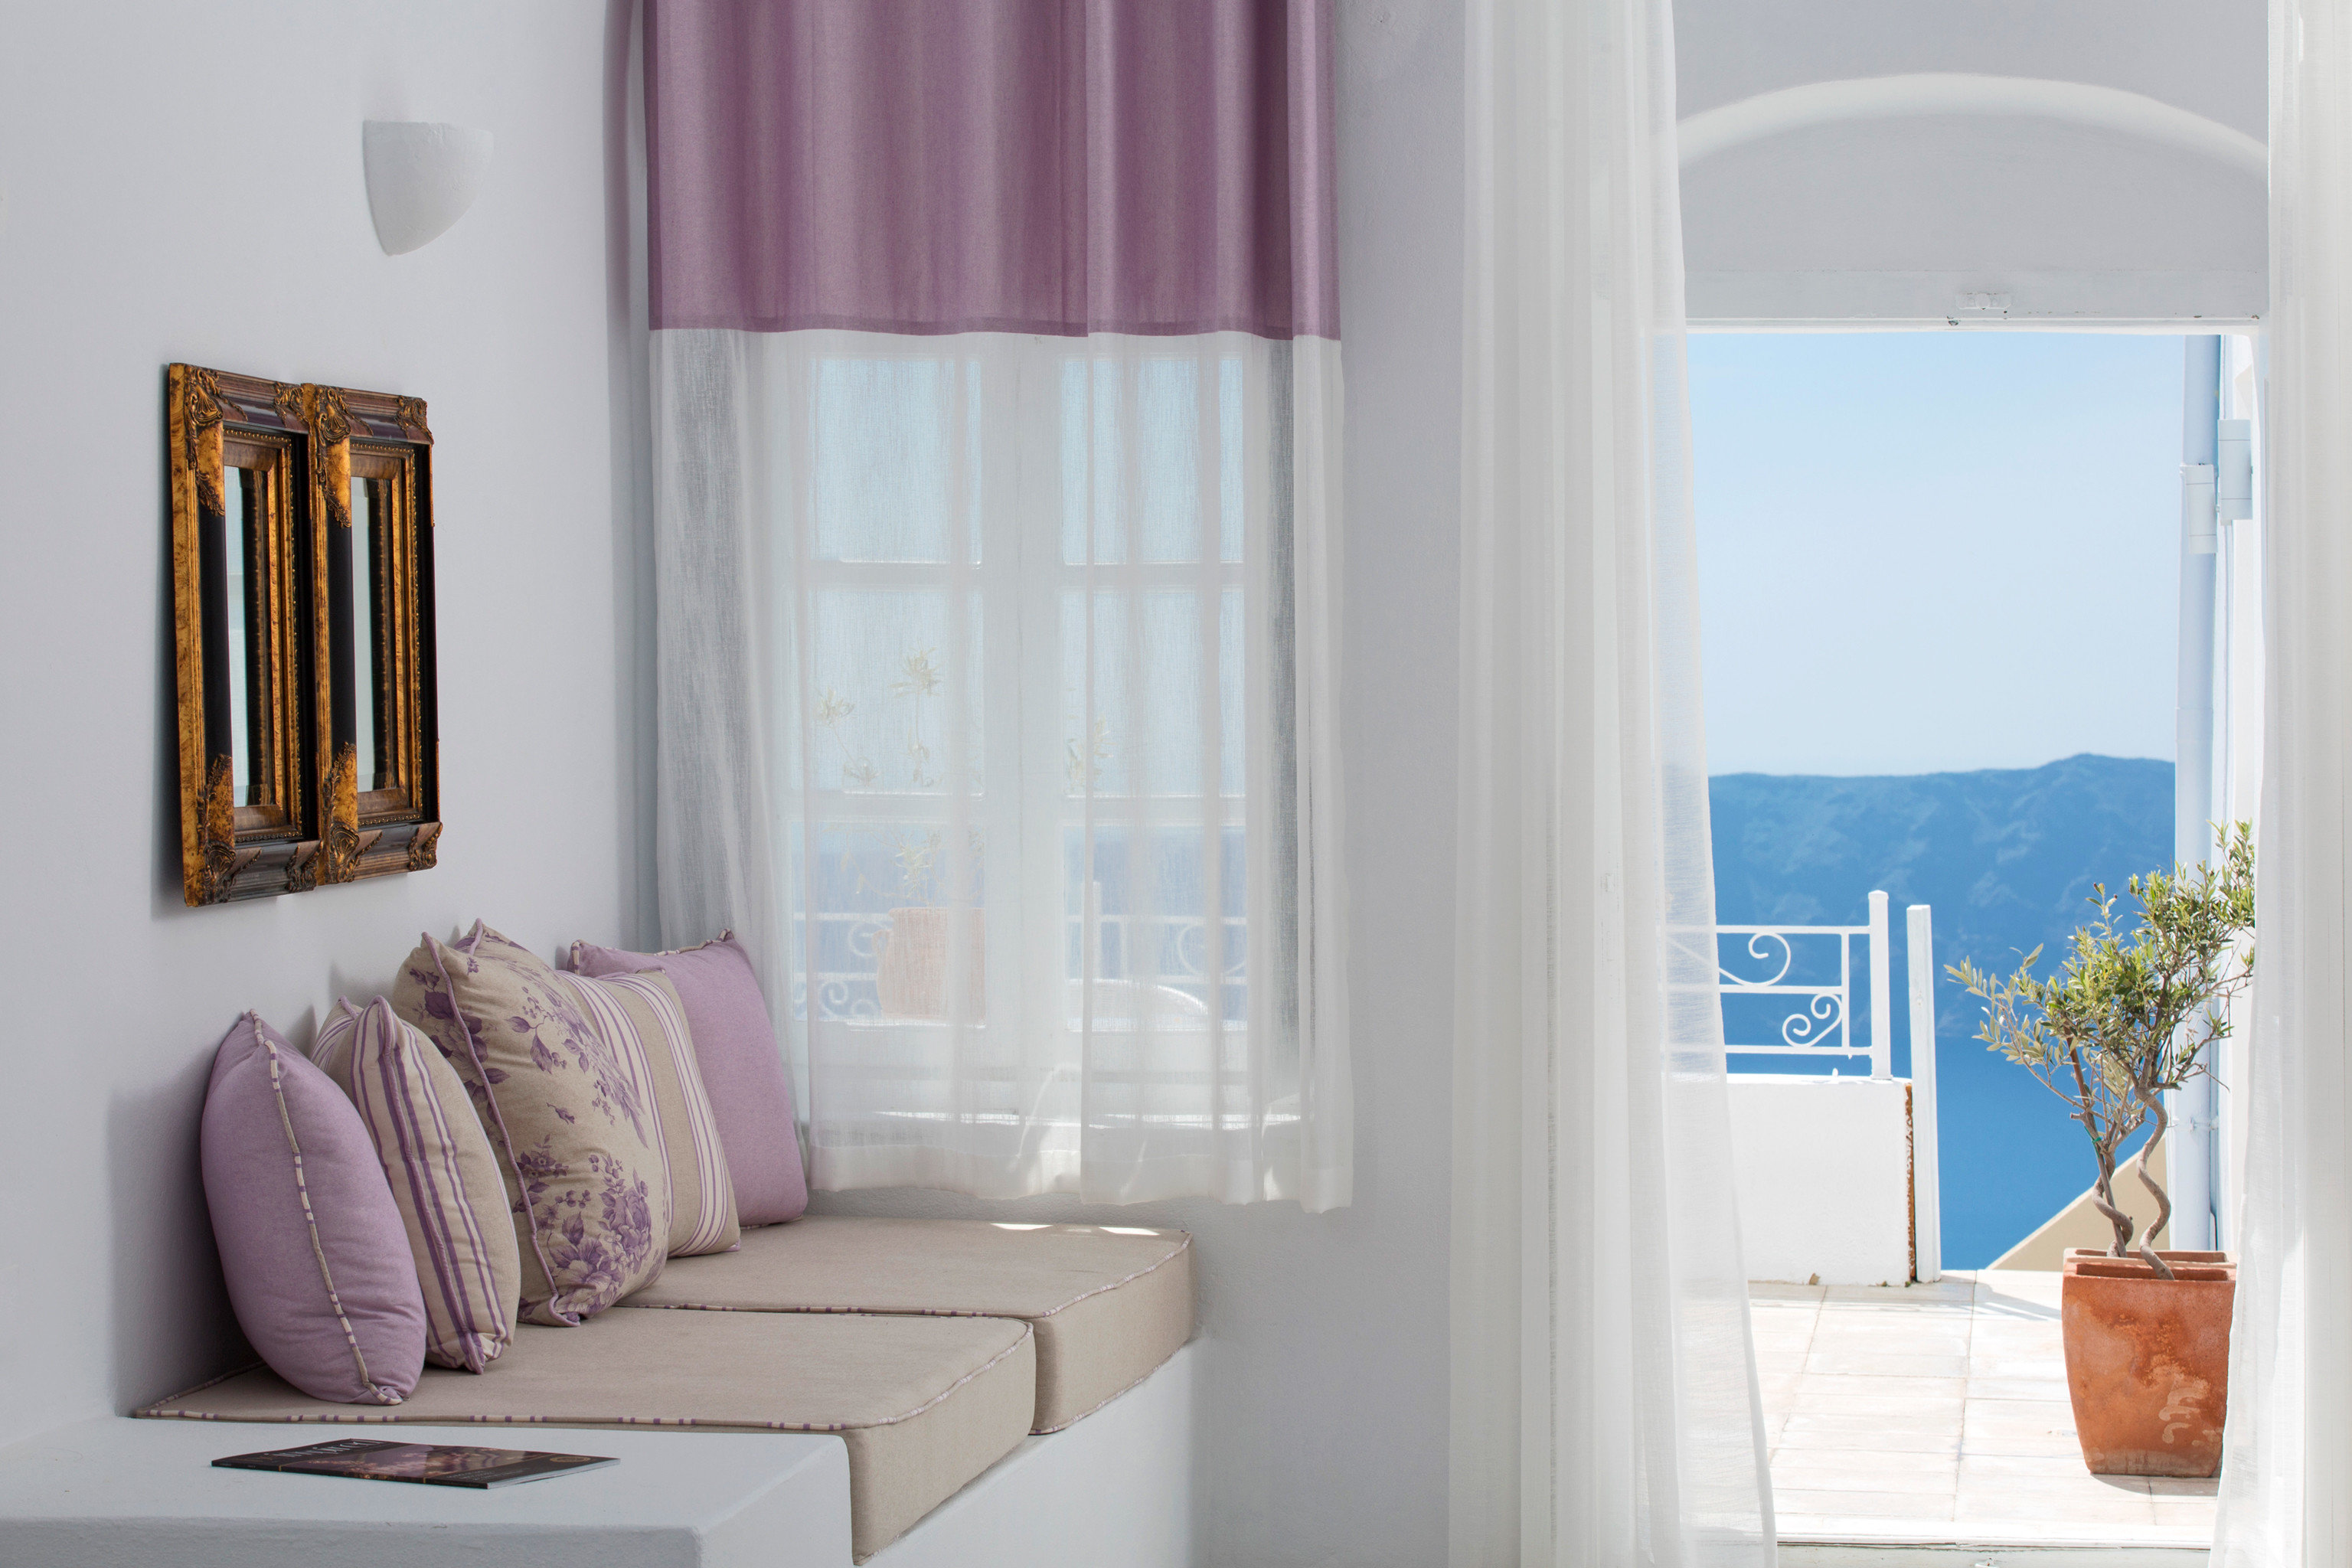 Balcony Bedroom Classic Elegant Suite Wine-Tasting property curtain white home textile living room window treatment pink material cottage colored